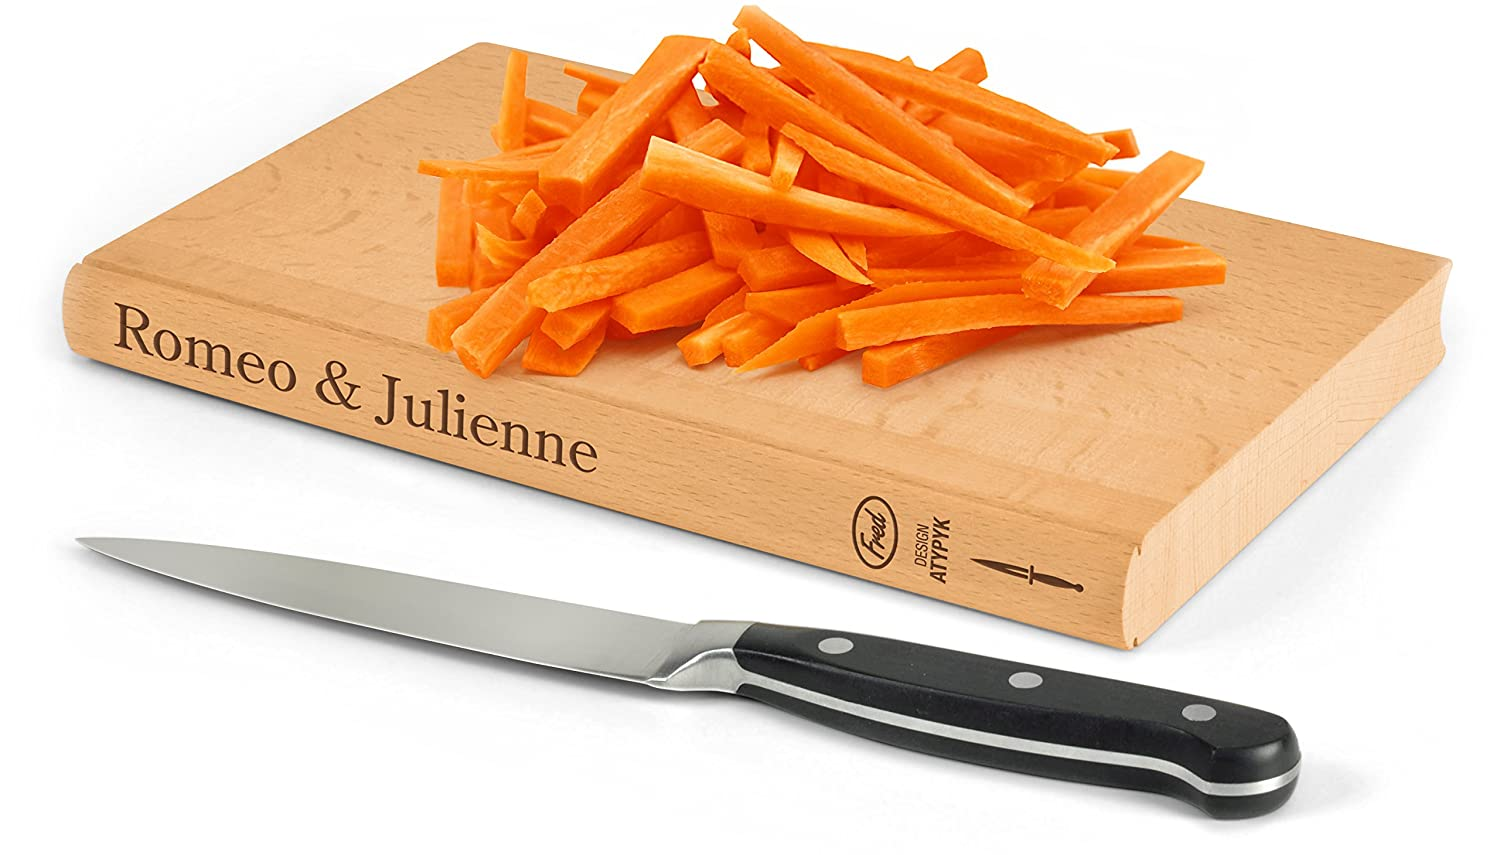 Romeo & Julienne cutting board